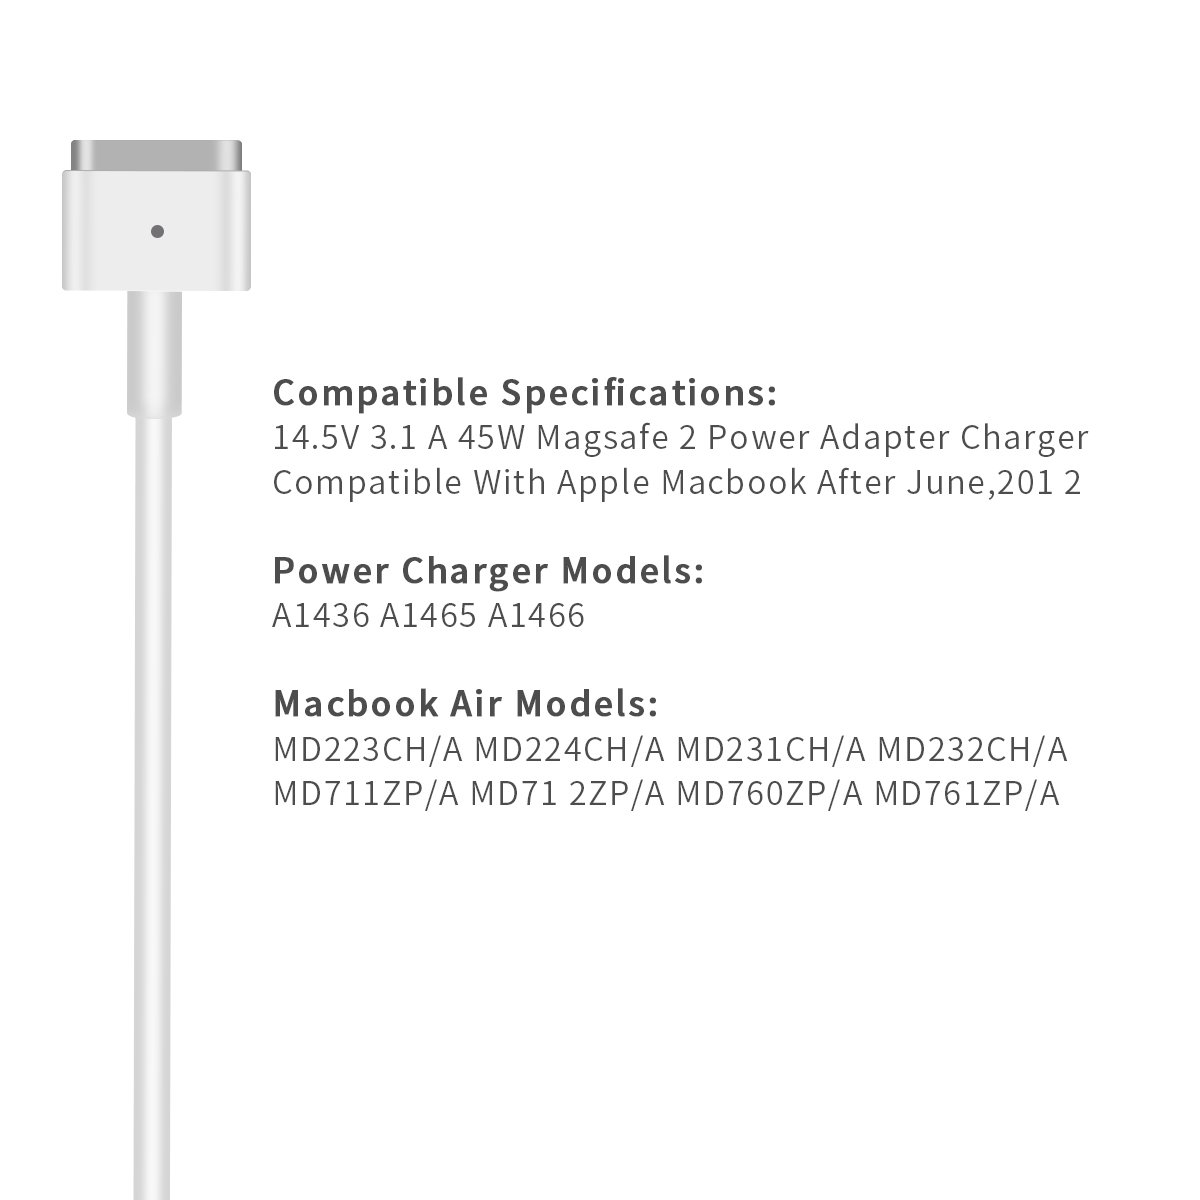 Mac Book Air Charger, AC 45W Magsafe 2 T-Tip Power Adapter Charger Replacement For MacBook Air 11/13 Inch (MacBook Air After Mid 2012) by Niceep (Image #5)